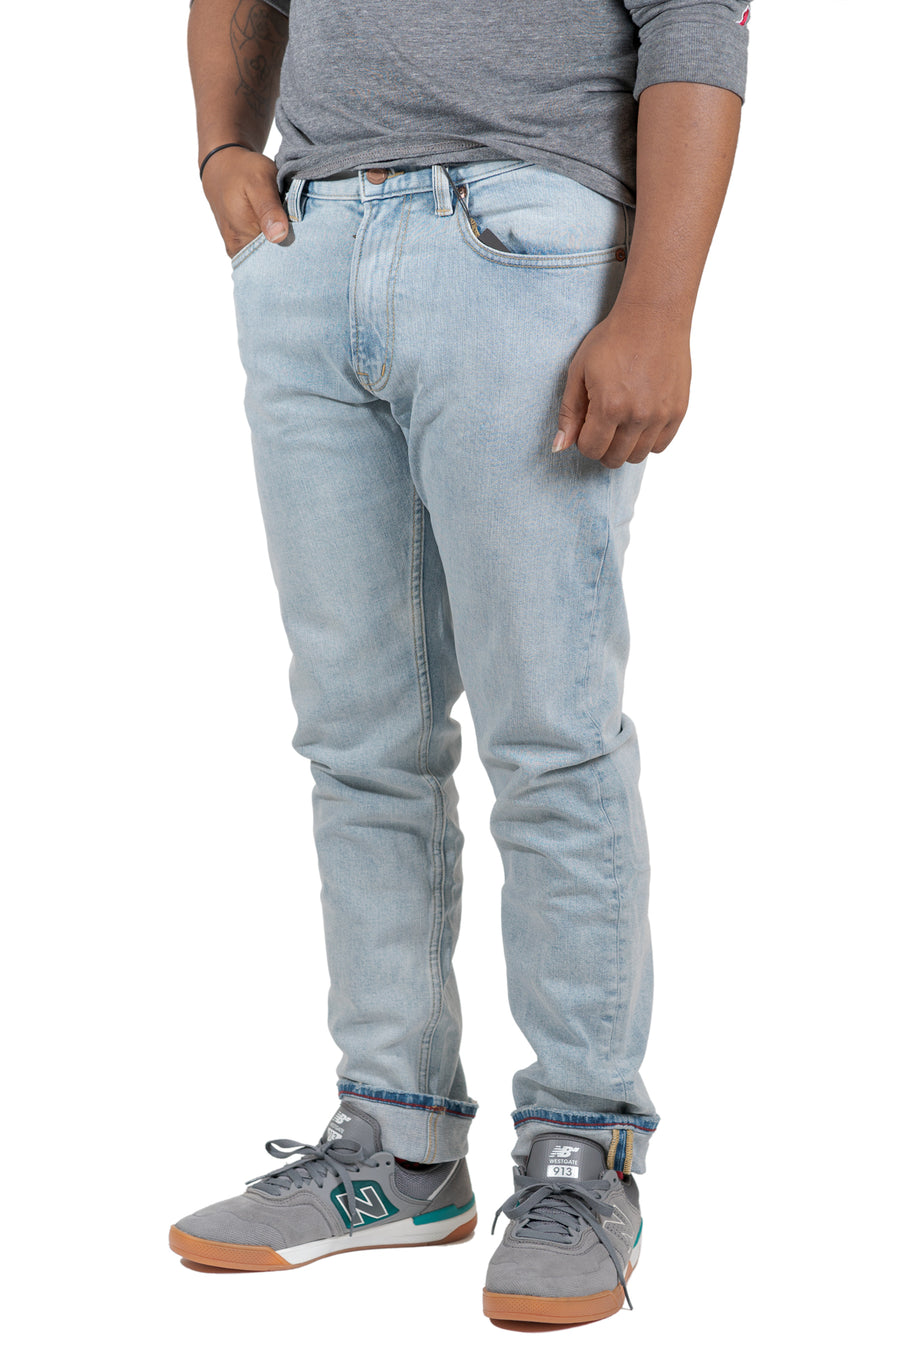 RVCA Daggers Slim Fit Denim Pant - Bleach Party (BHY)